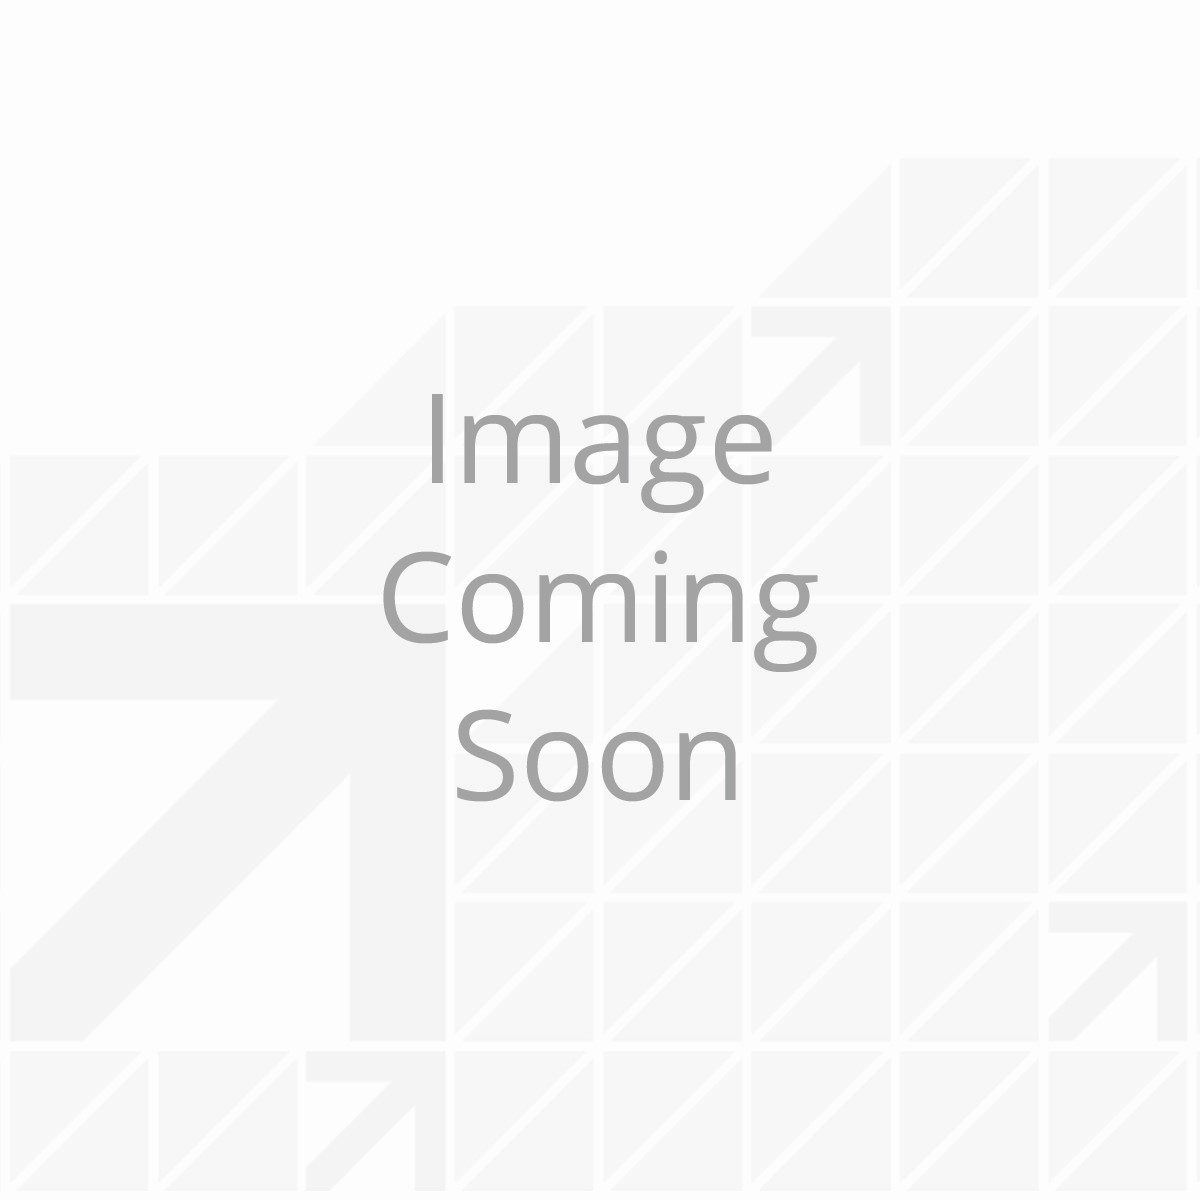 20A Connector to 30A Plug One-Piece Adapter - Yellow